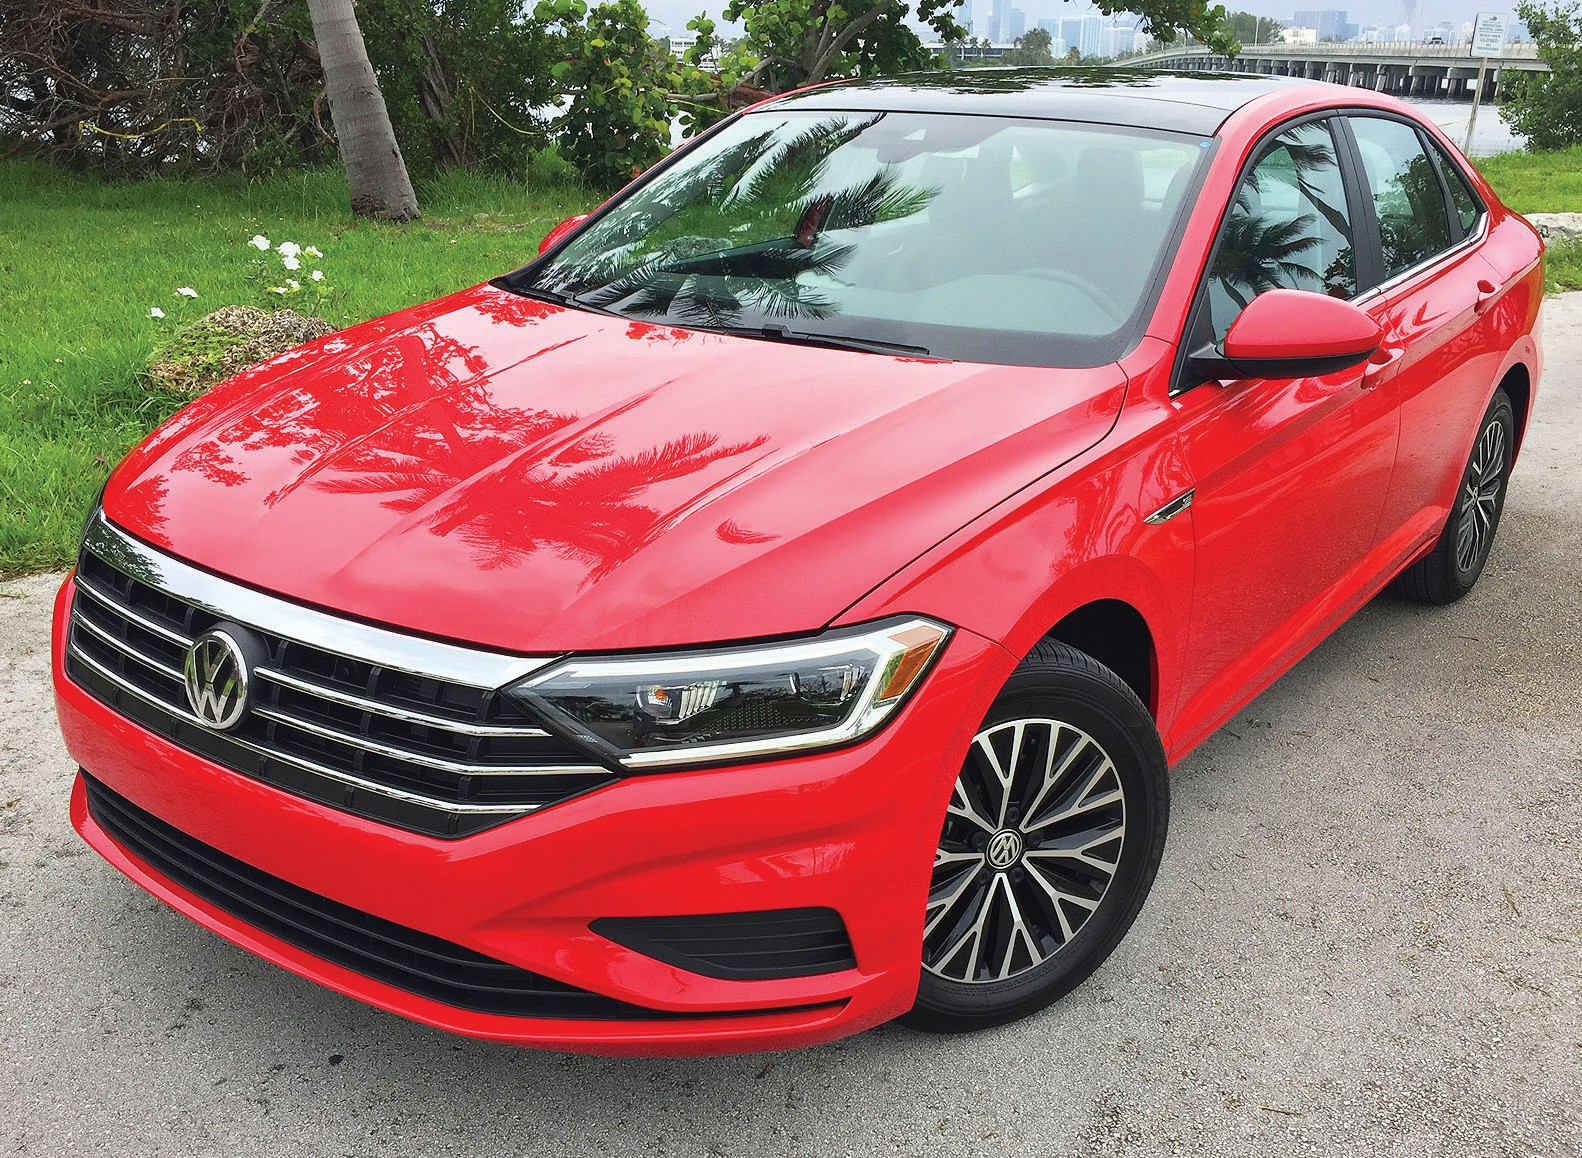 Volkswagens New Jetta Is Almost An Audi Naples Florida Weekly - Audi naples